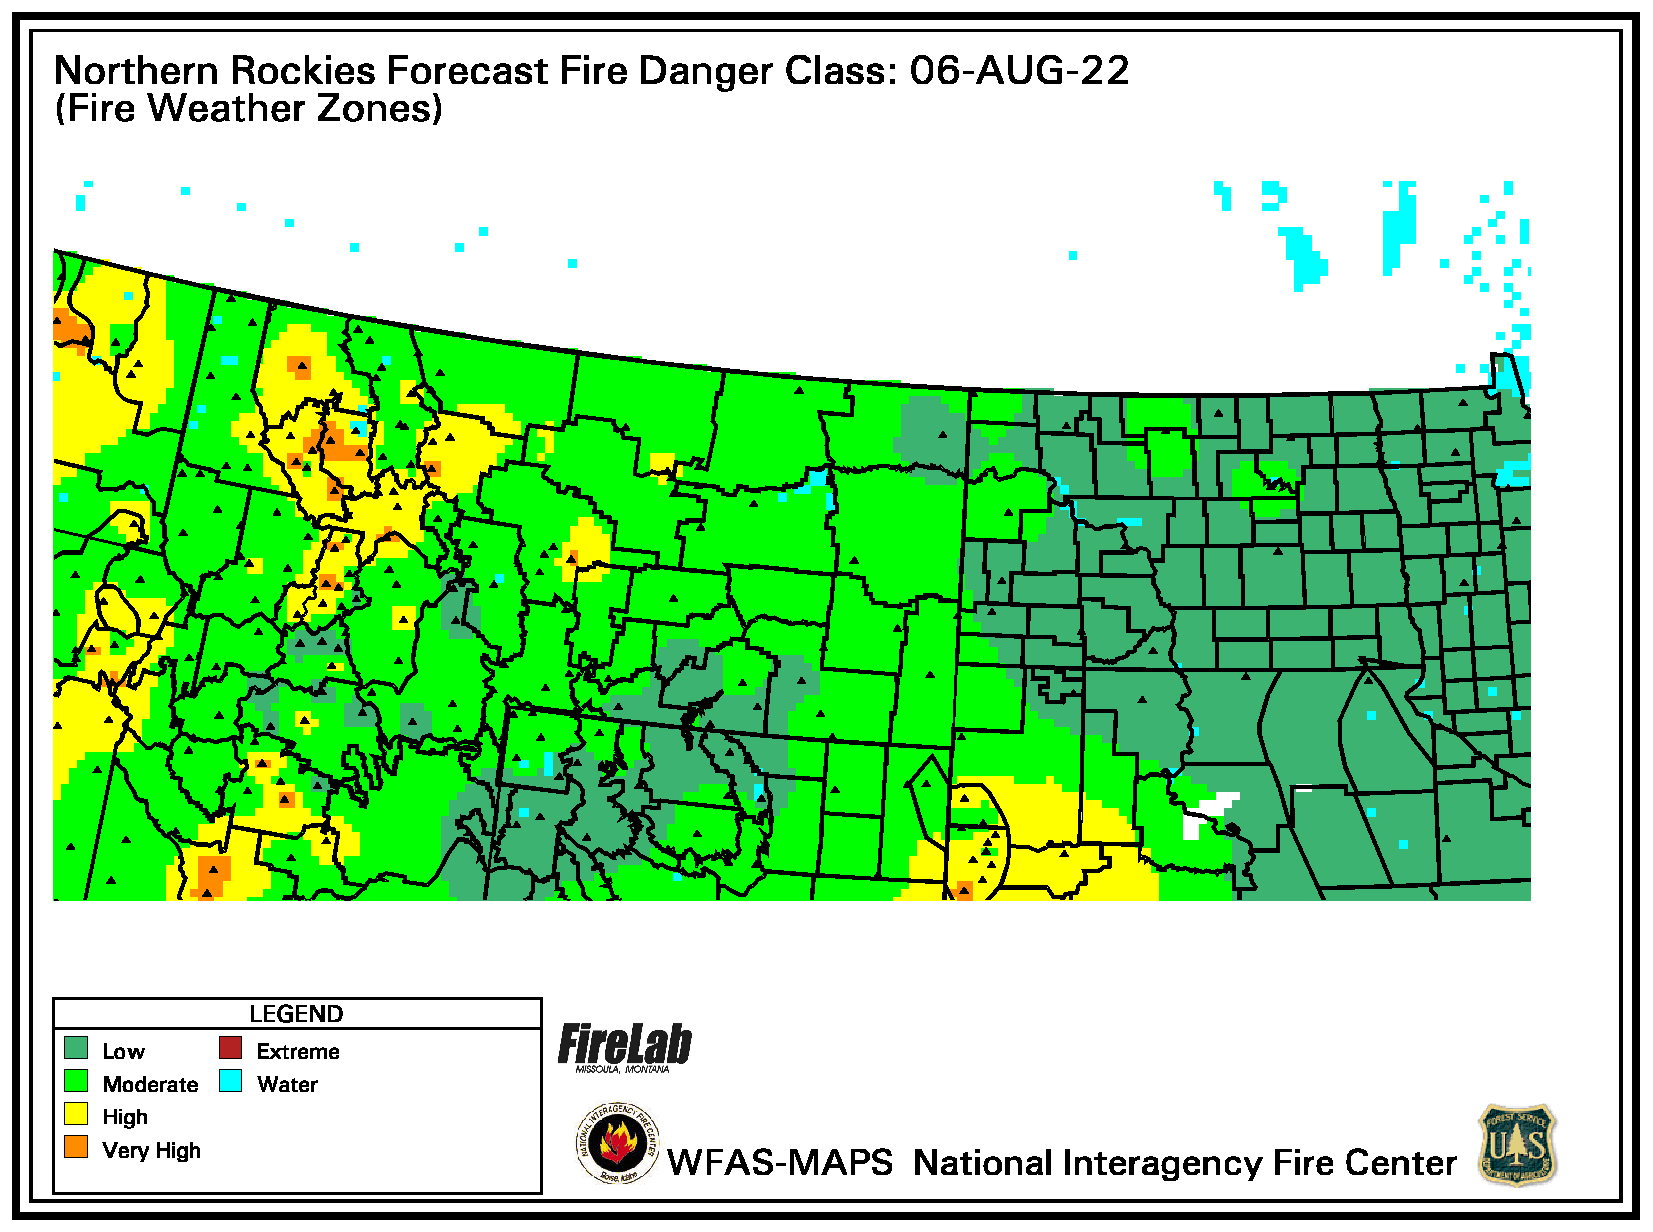 Current Fire Danger